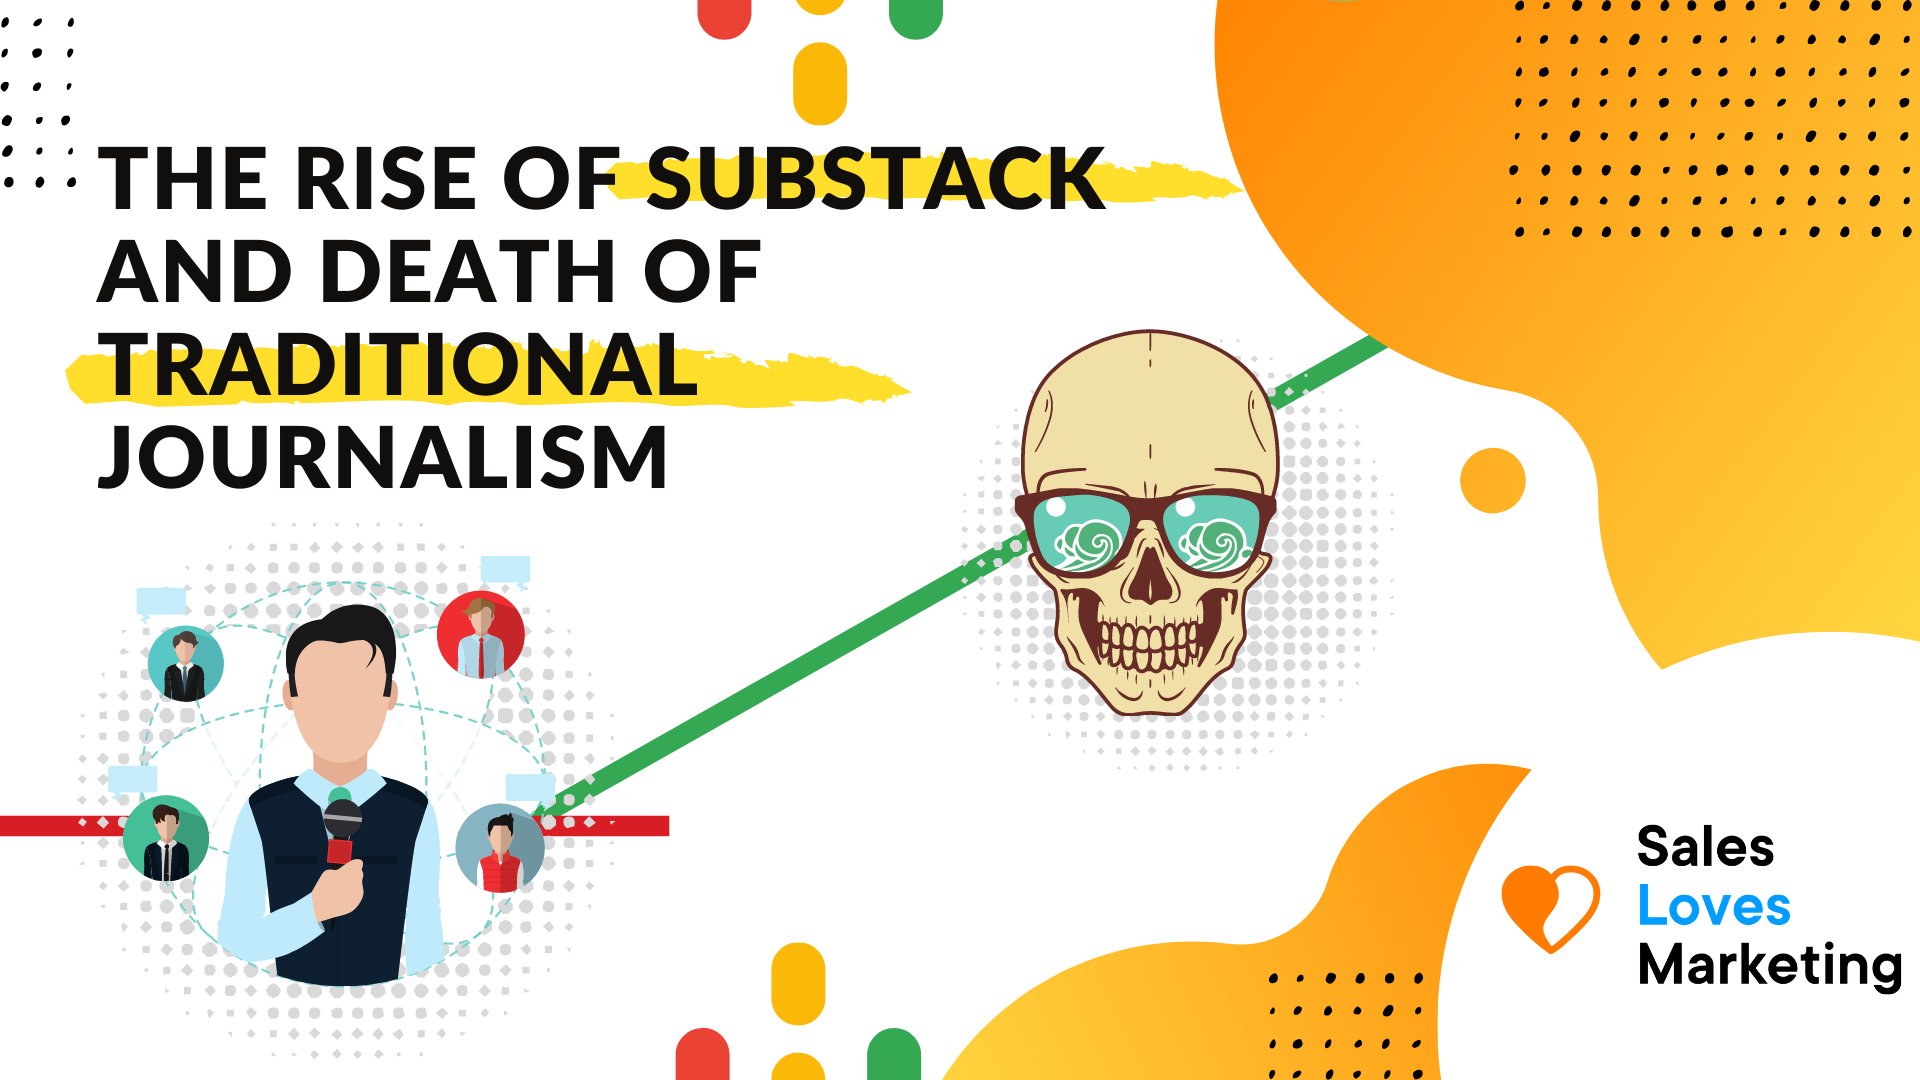 Get to know more about Substack, what is it, why should use it and and all other benefits of Substack.